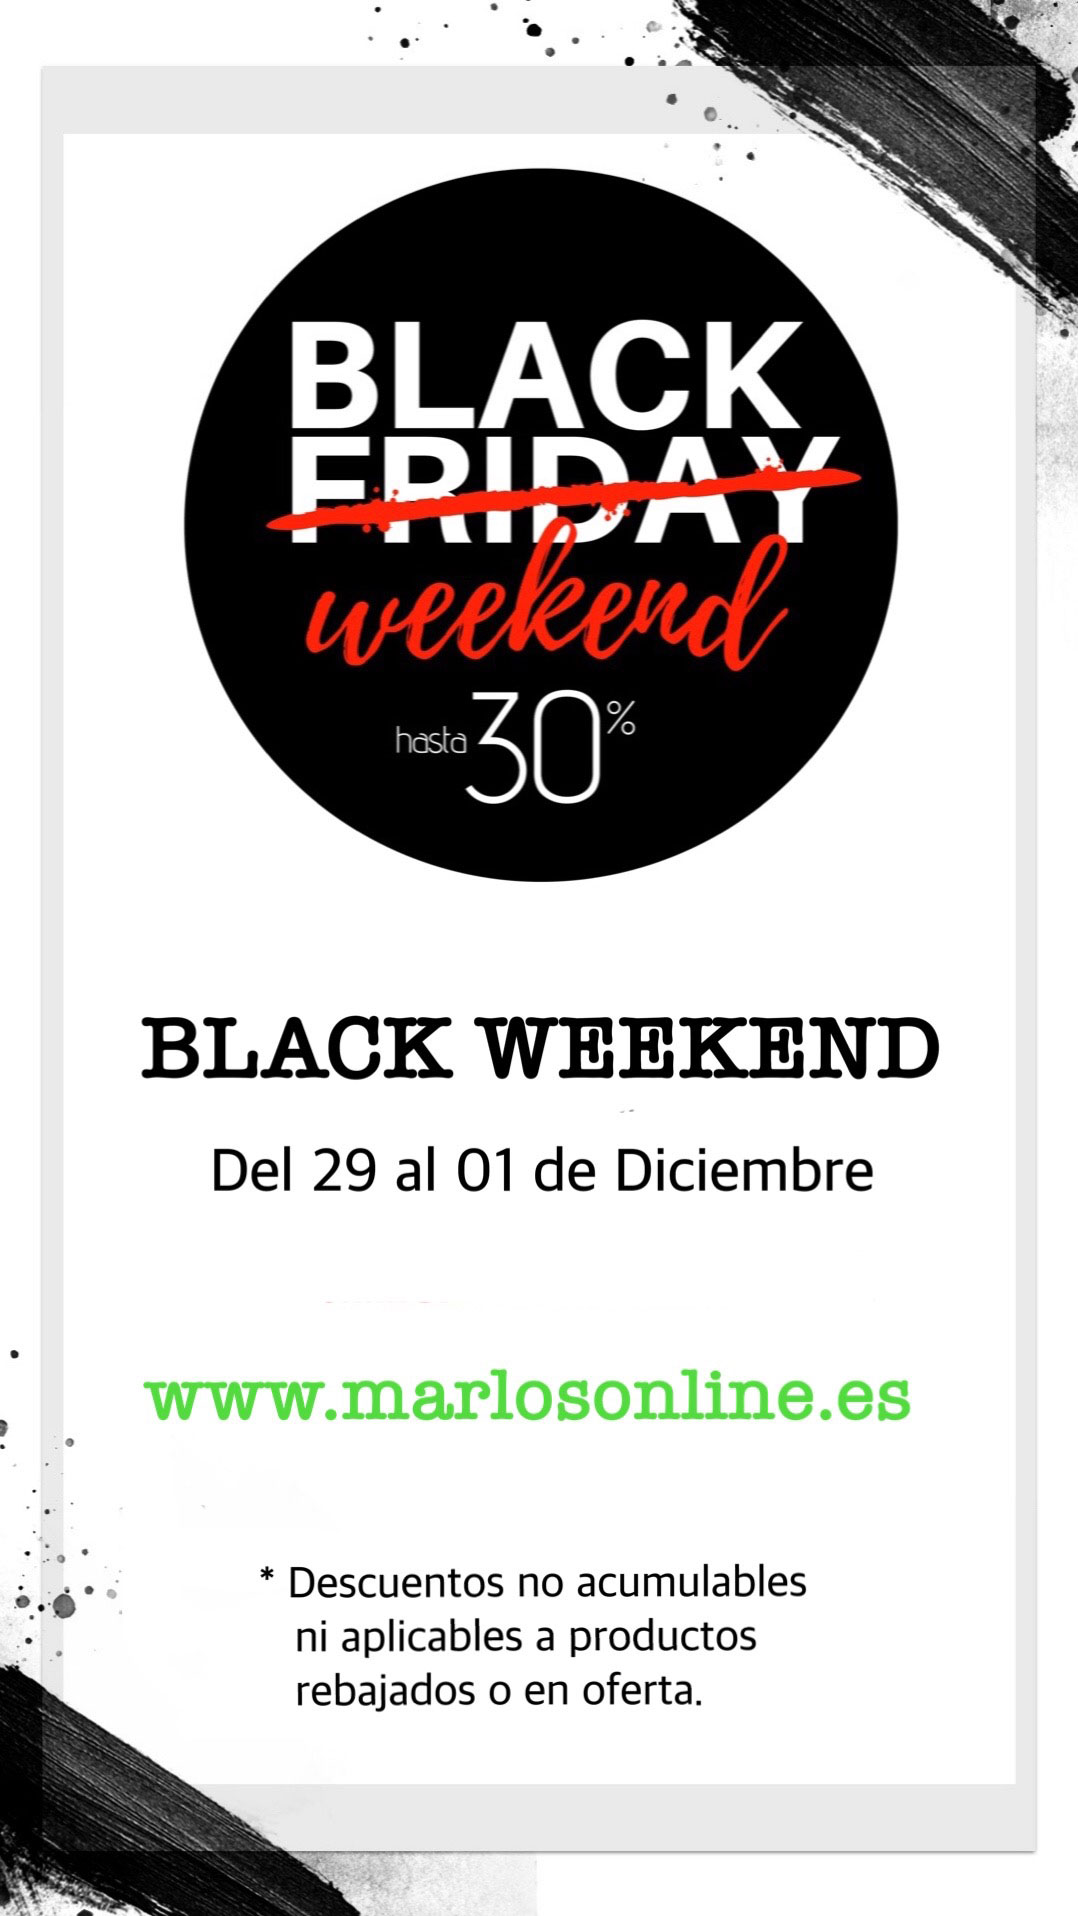 Black Friday | Marlo's Online